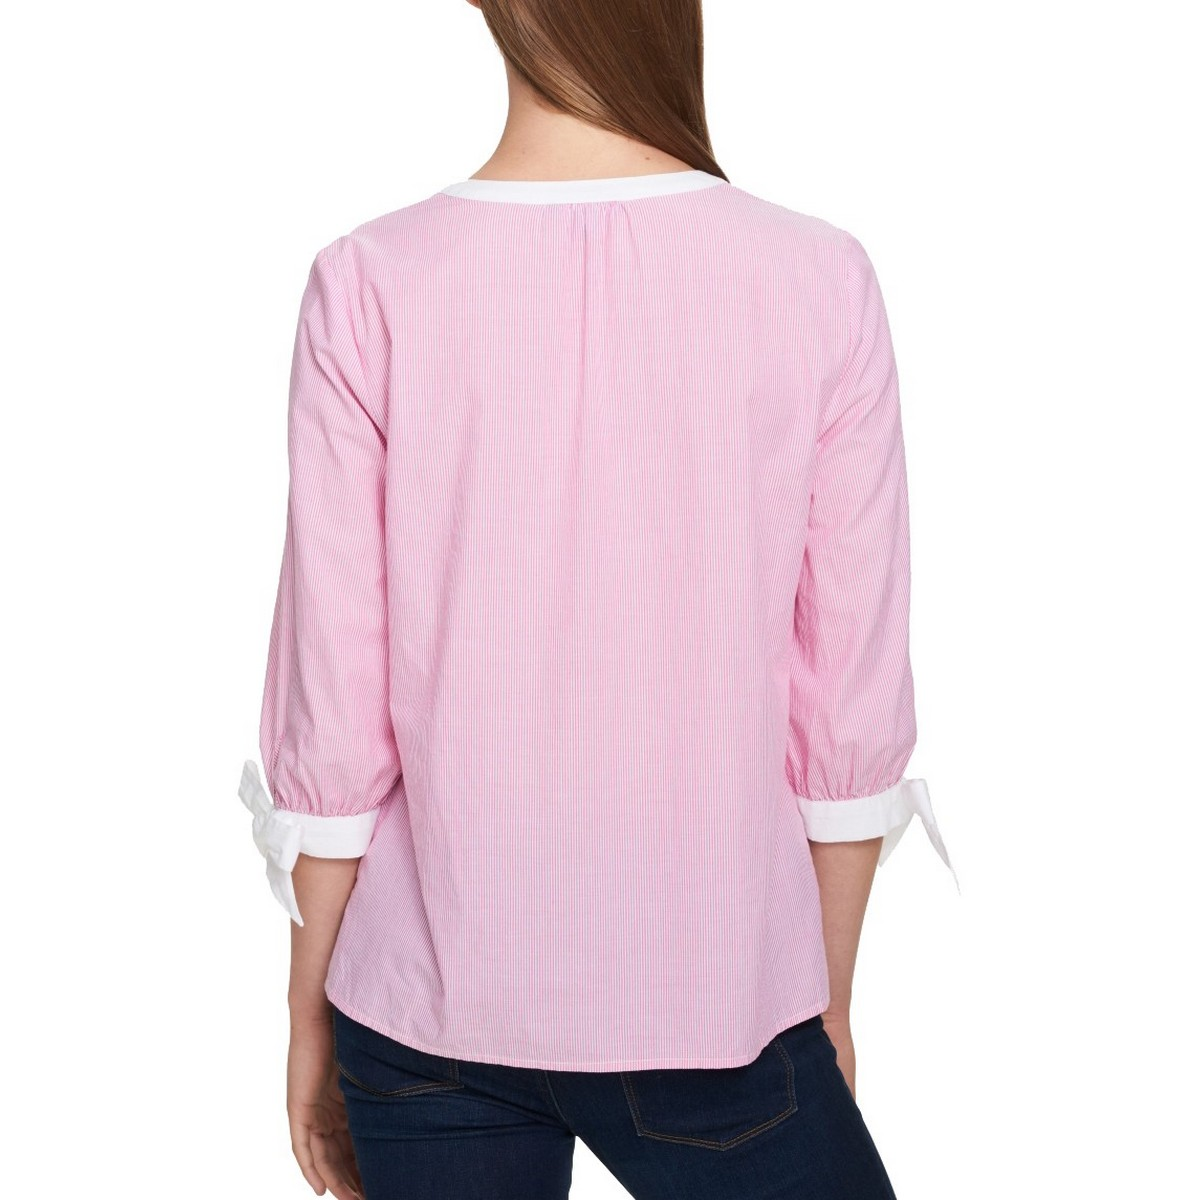 TOMMY-HILFIGER-NEW-Women-039-s-Pink-Striped-Tie-sleeve-V-Neck-Blouse-Shirt-Top-TEDO thumbnail 4